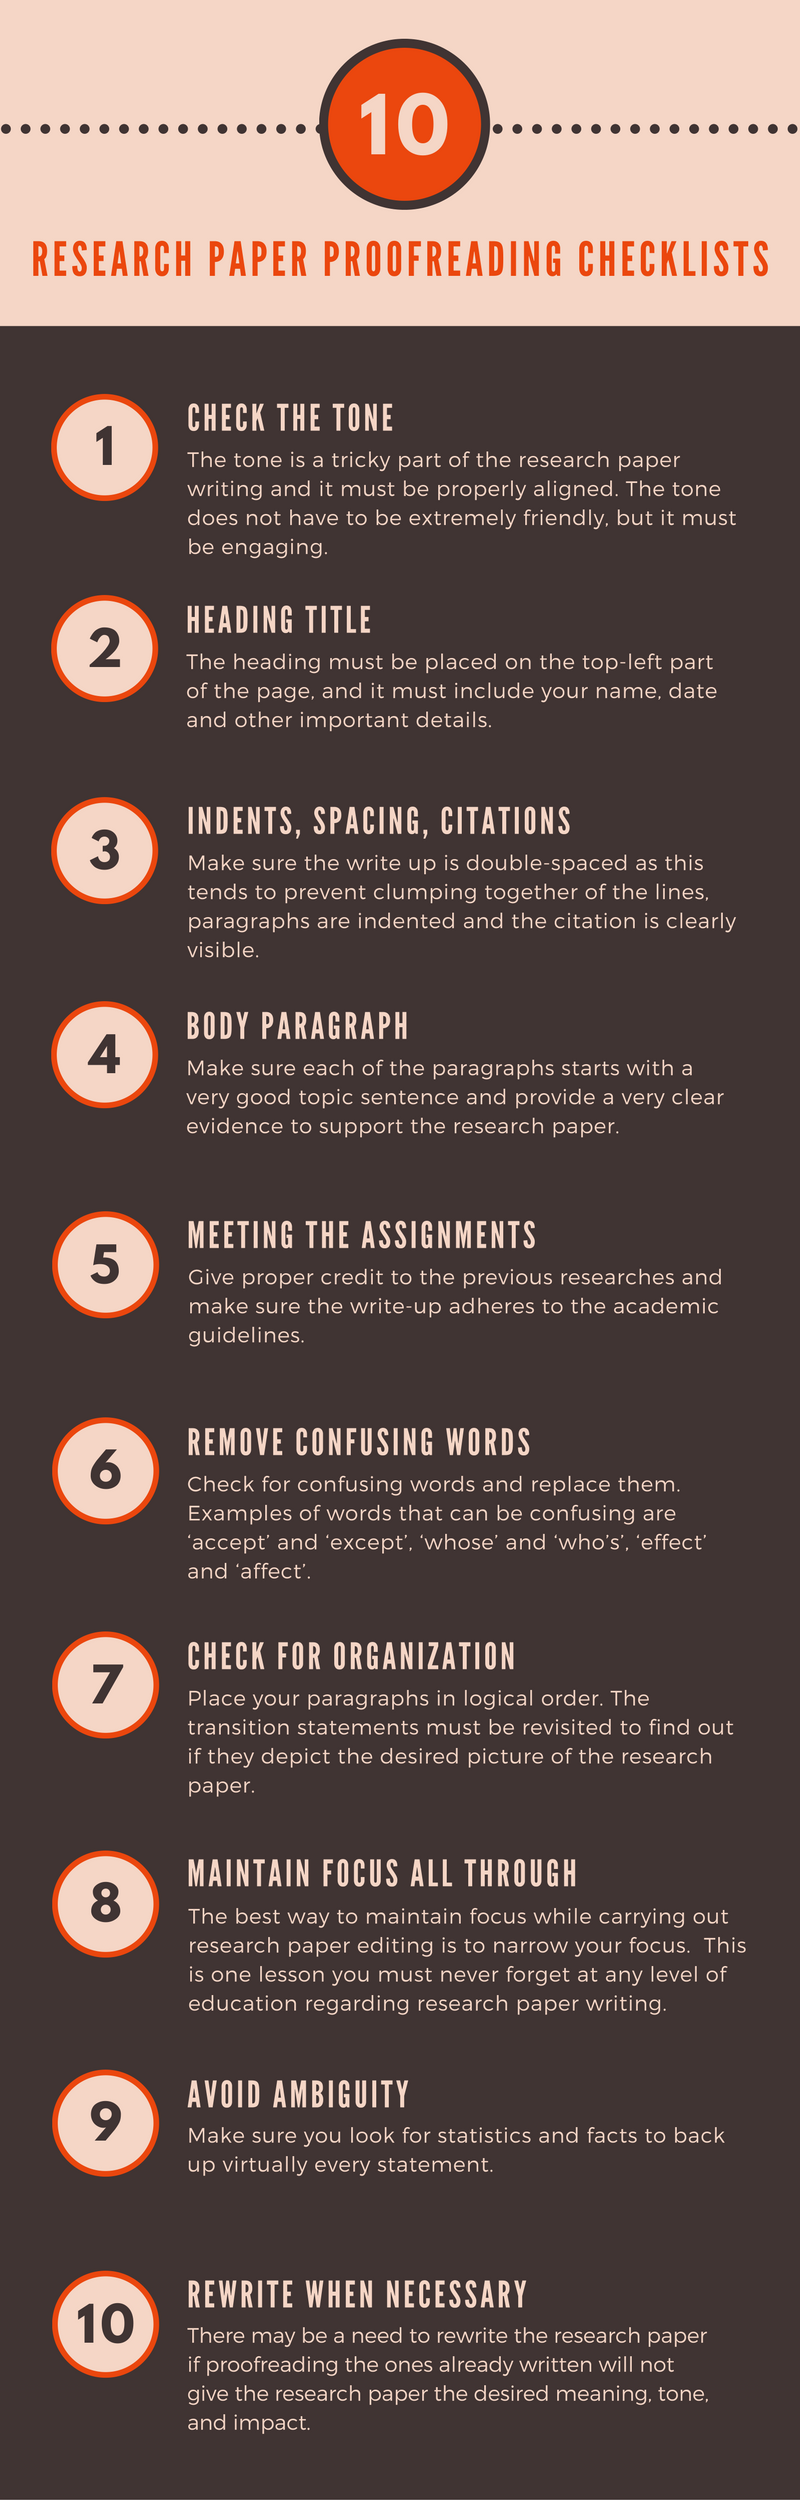 Top 10 Research Paper Proofreading Checklists - ExpertEditors.Net